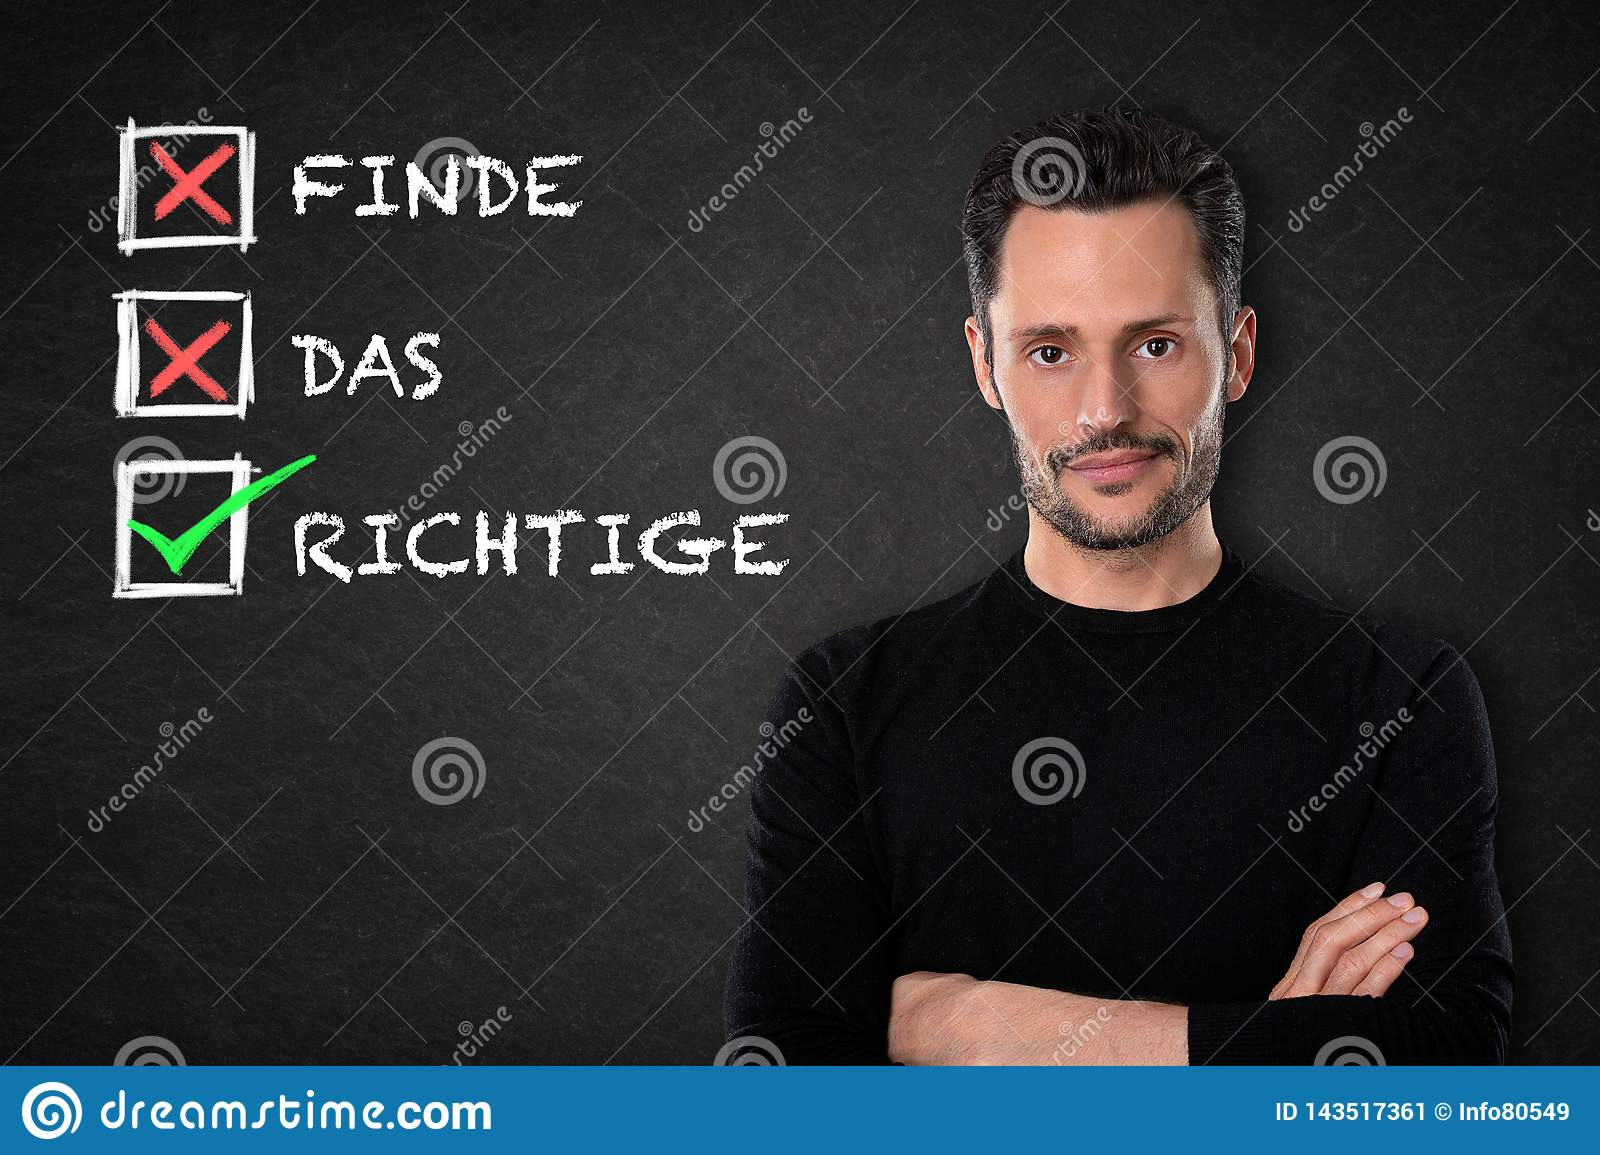 Young man with crossed arms, `Find das Richtige` text on a chalkboard background. Translation: `Find the right one`